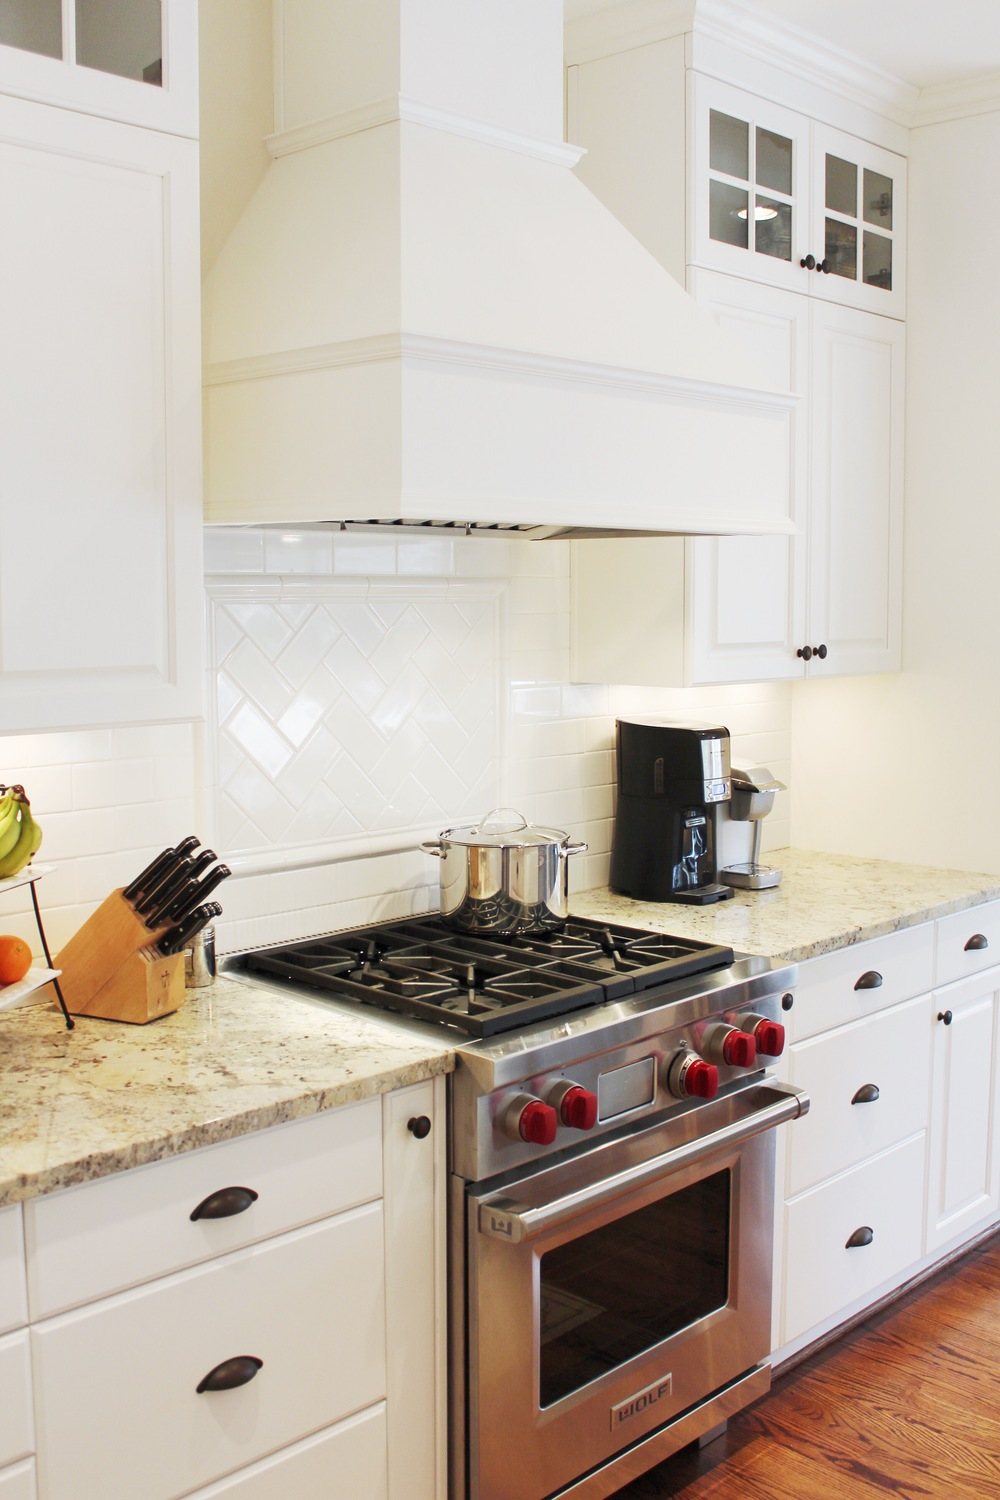 New Stove and Hood Vent for Virginia Beach Kitchen Remodel